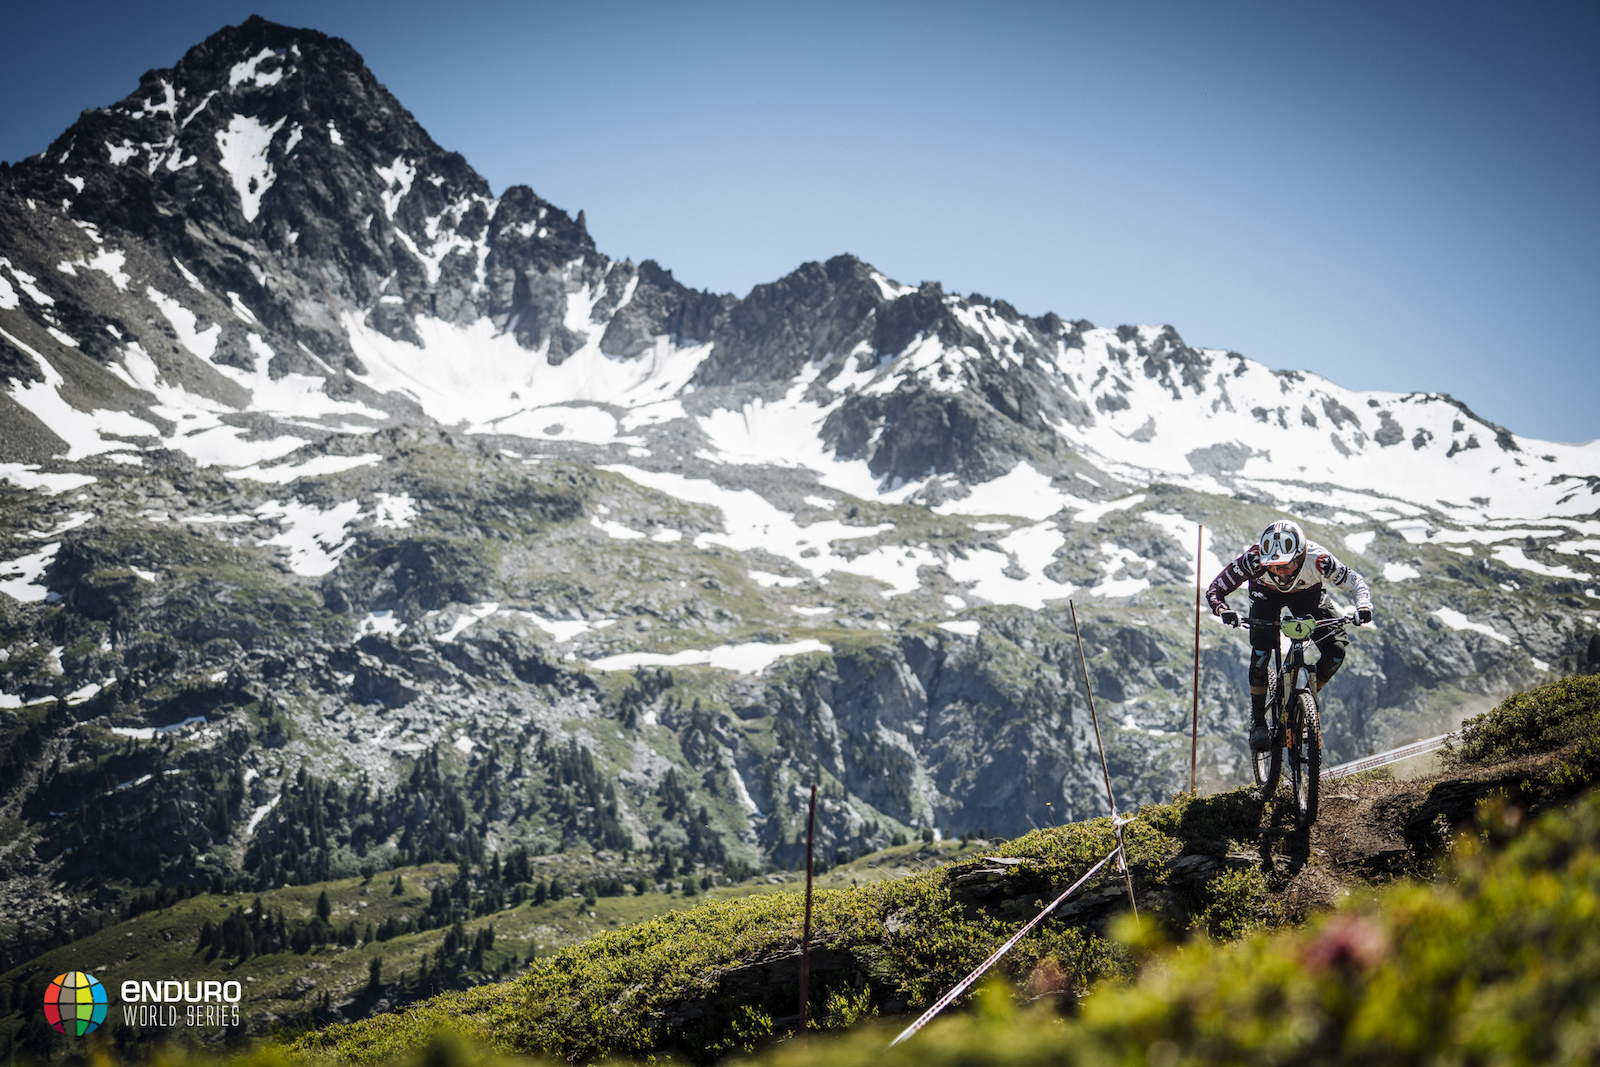 Enduro World Series releases its 2018 calendar